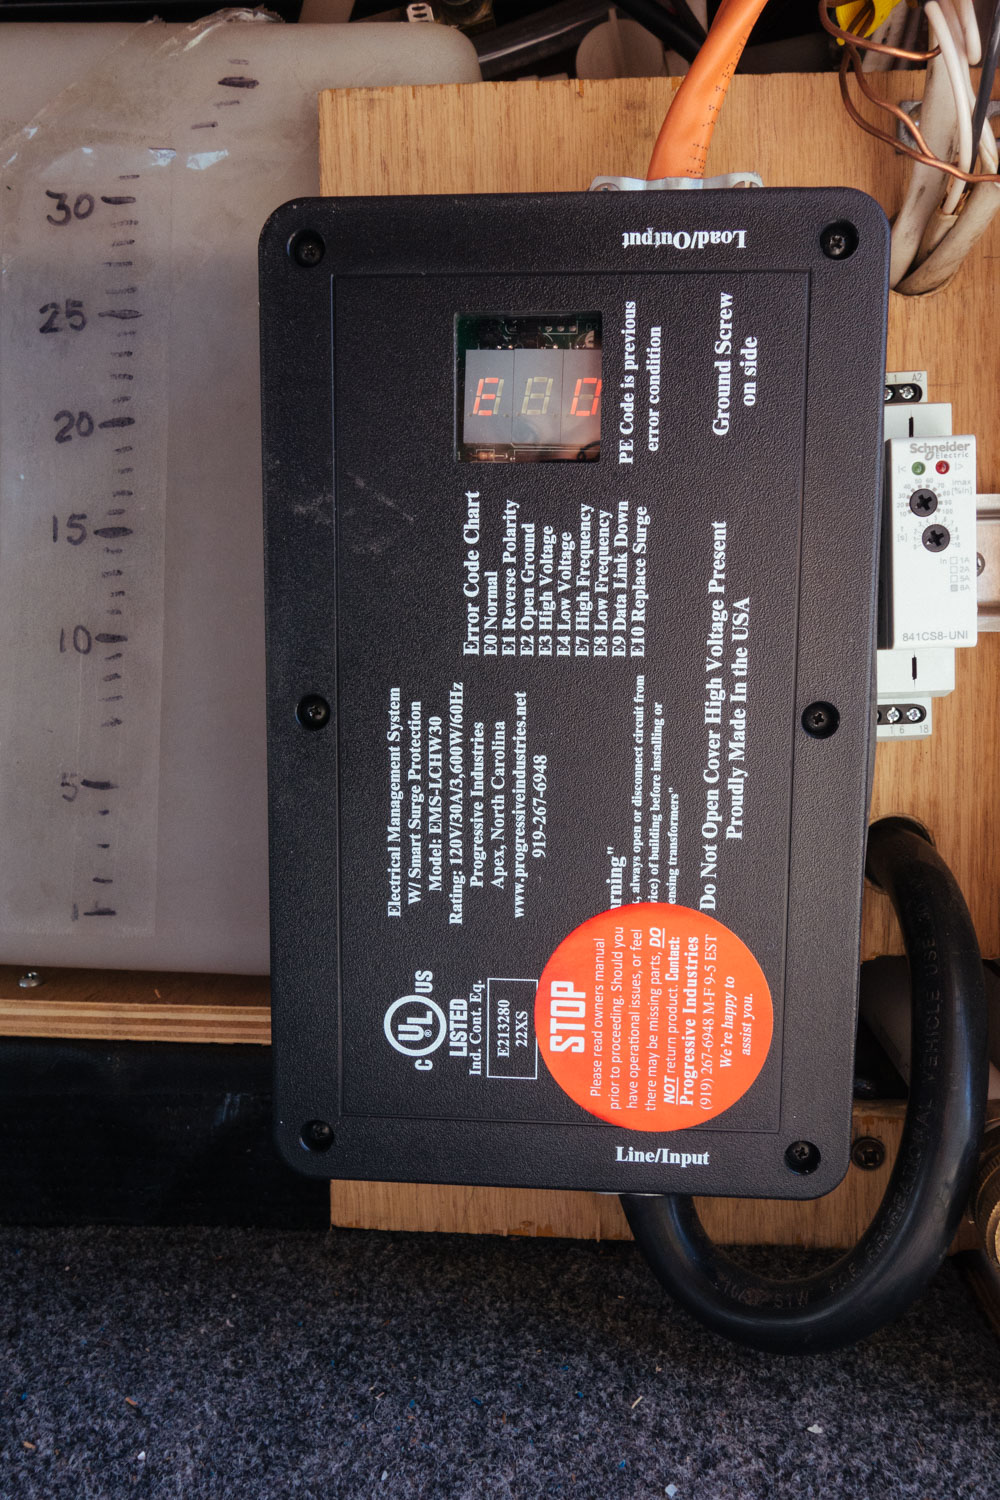 This is our shore power hardwired surge protector.